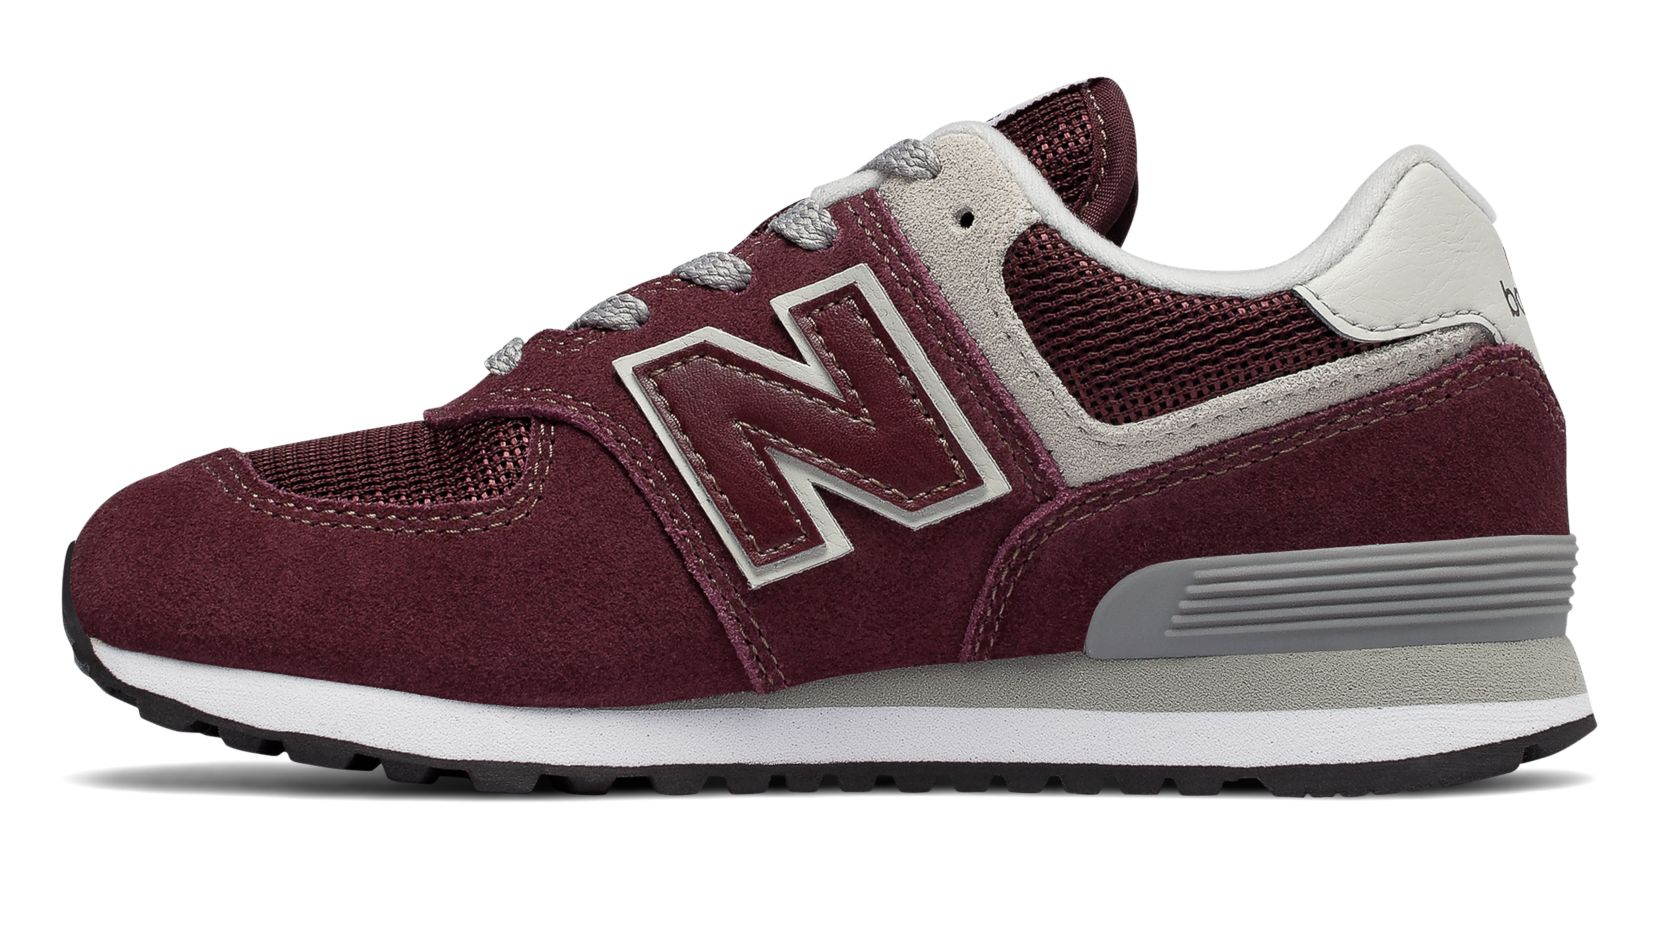 437440378c6d2 New Balance Grade School Shoe Burgundy with Grey 574 Core - Foot Paths Shoes